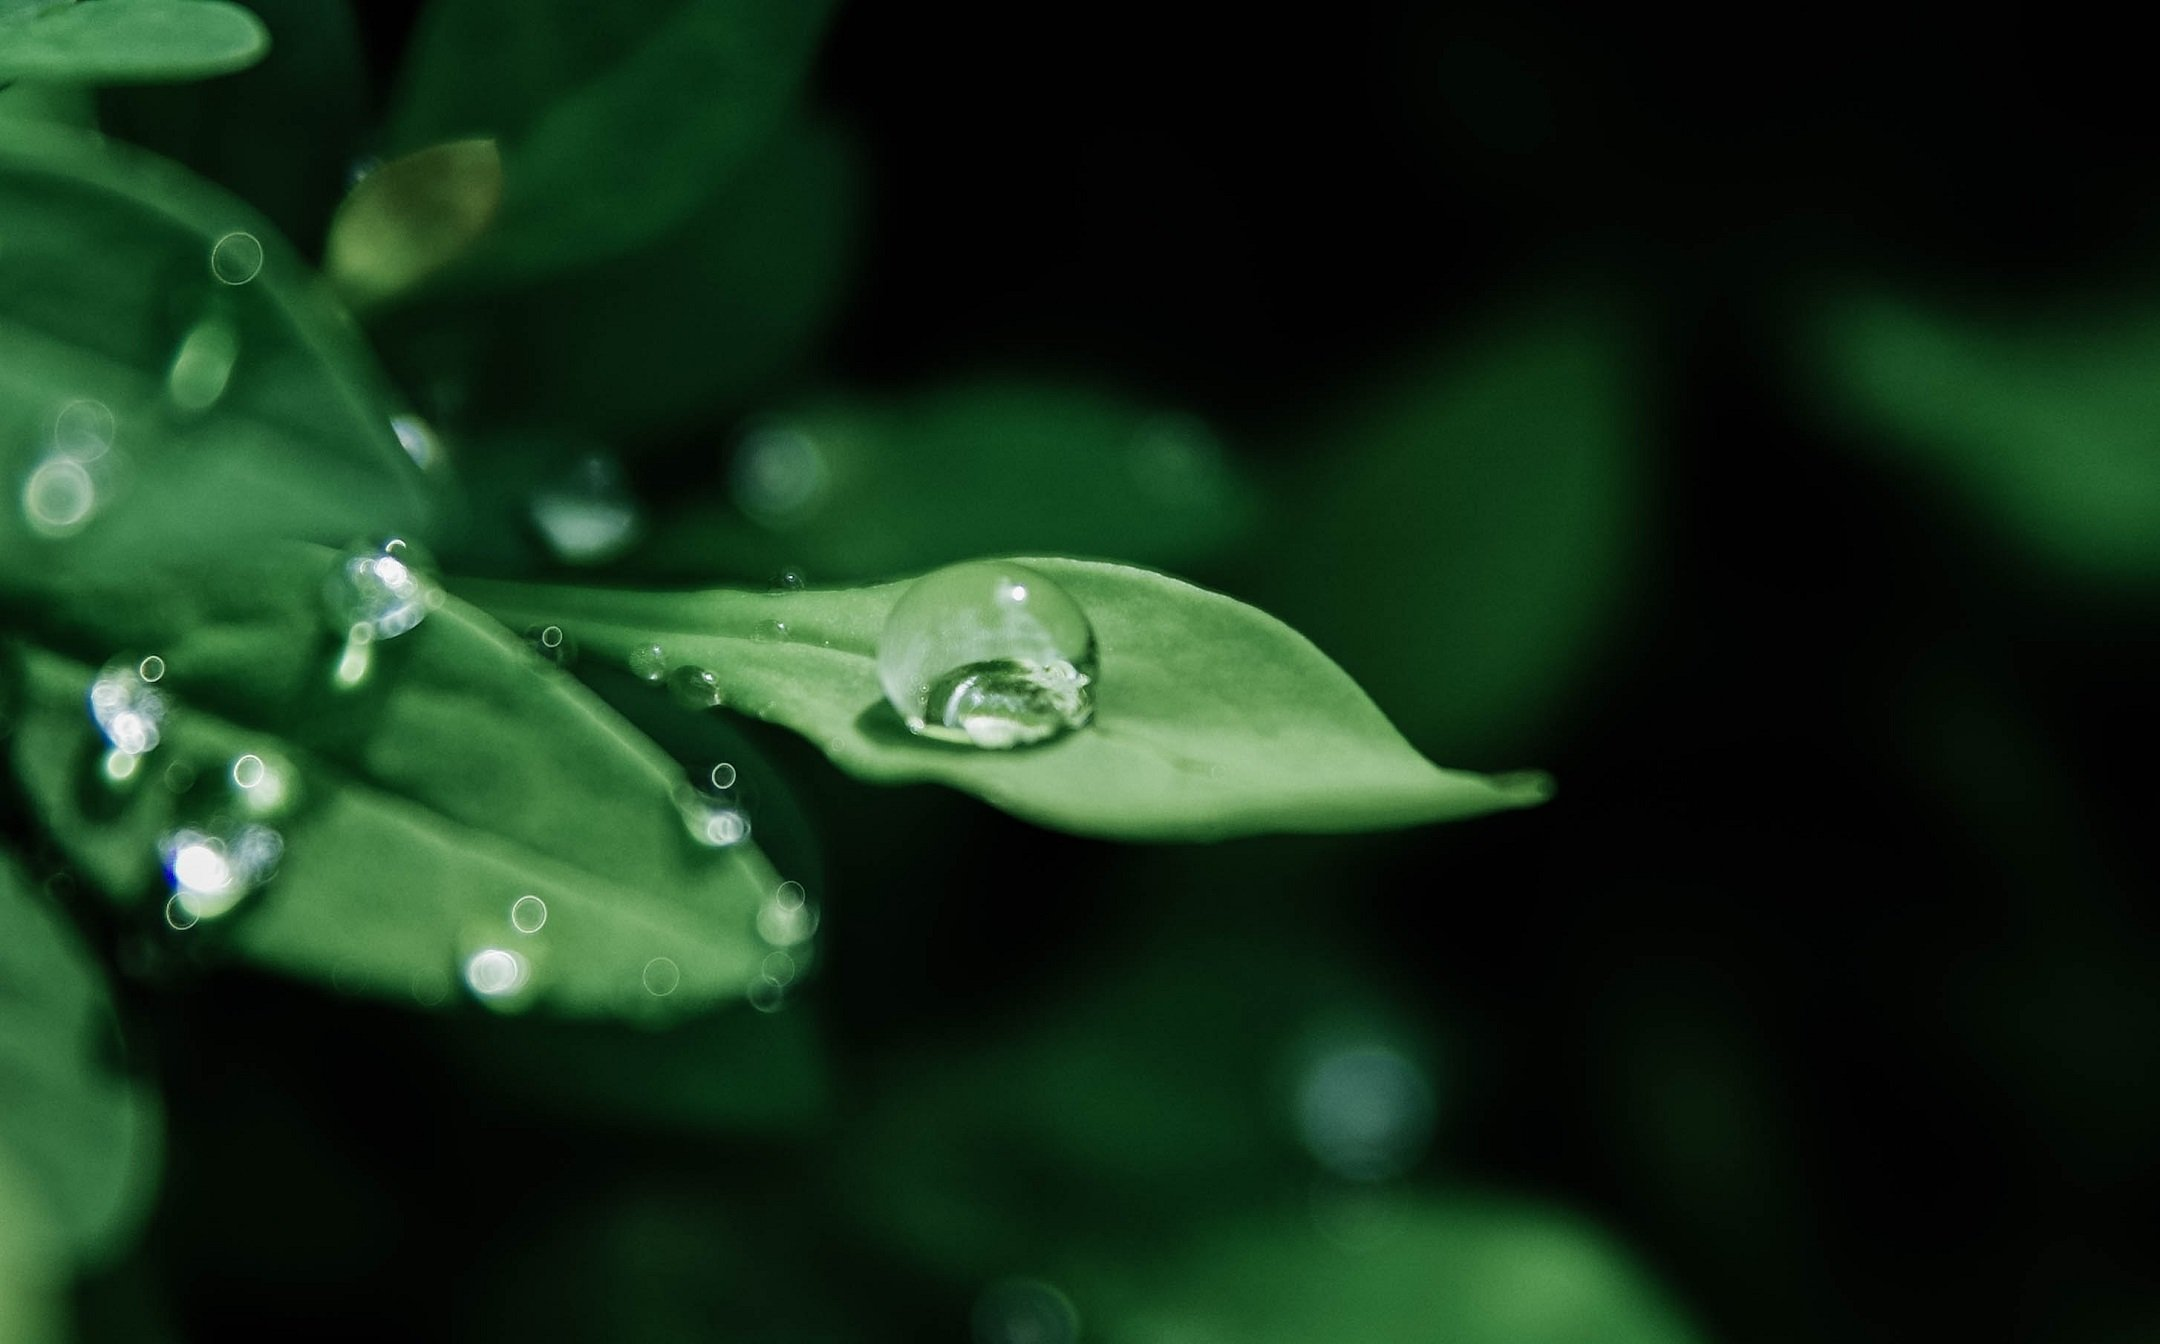 Hyperrealistic Visualizations: Water Drops on Leaves